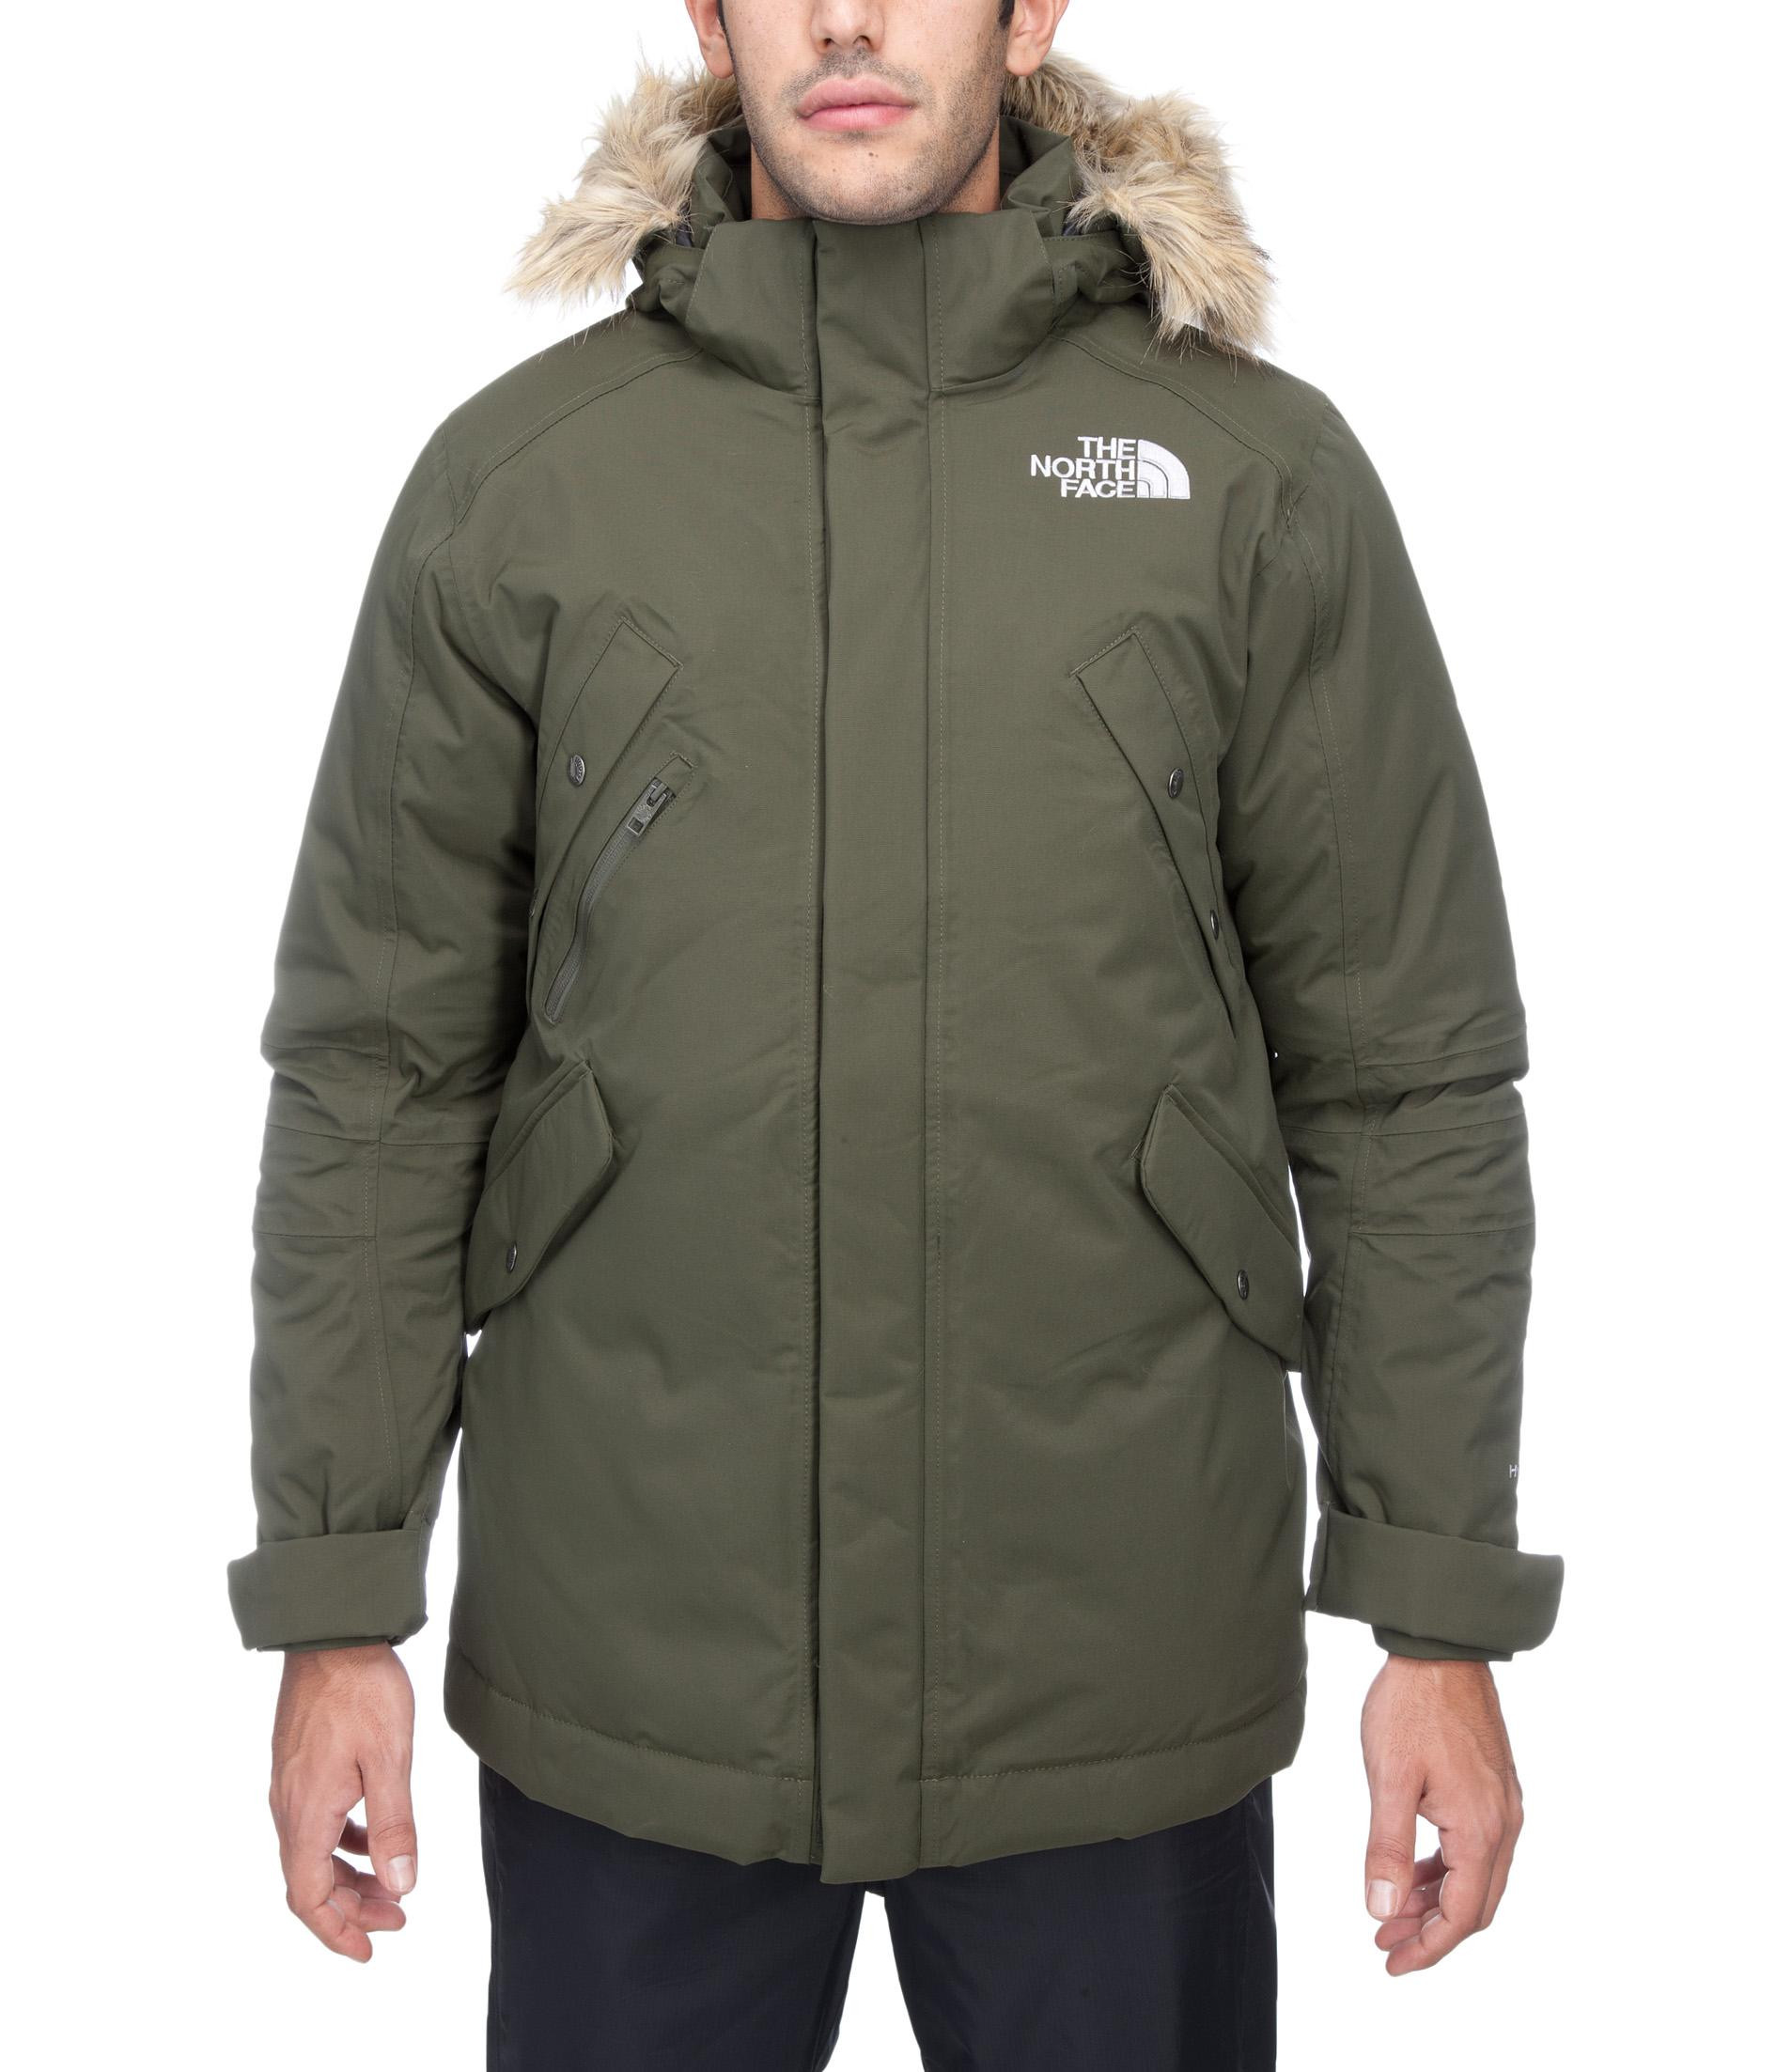 The north Face Abrigo Magnífico Foto the north Face Men S Stone Sentinel Insulated Jacket Of 32  Magnífica the north Face Abrigo